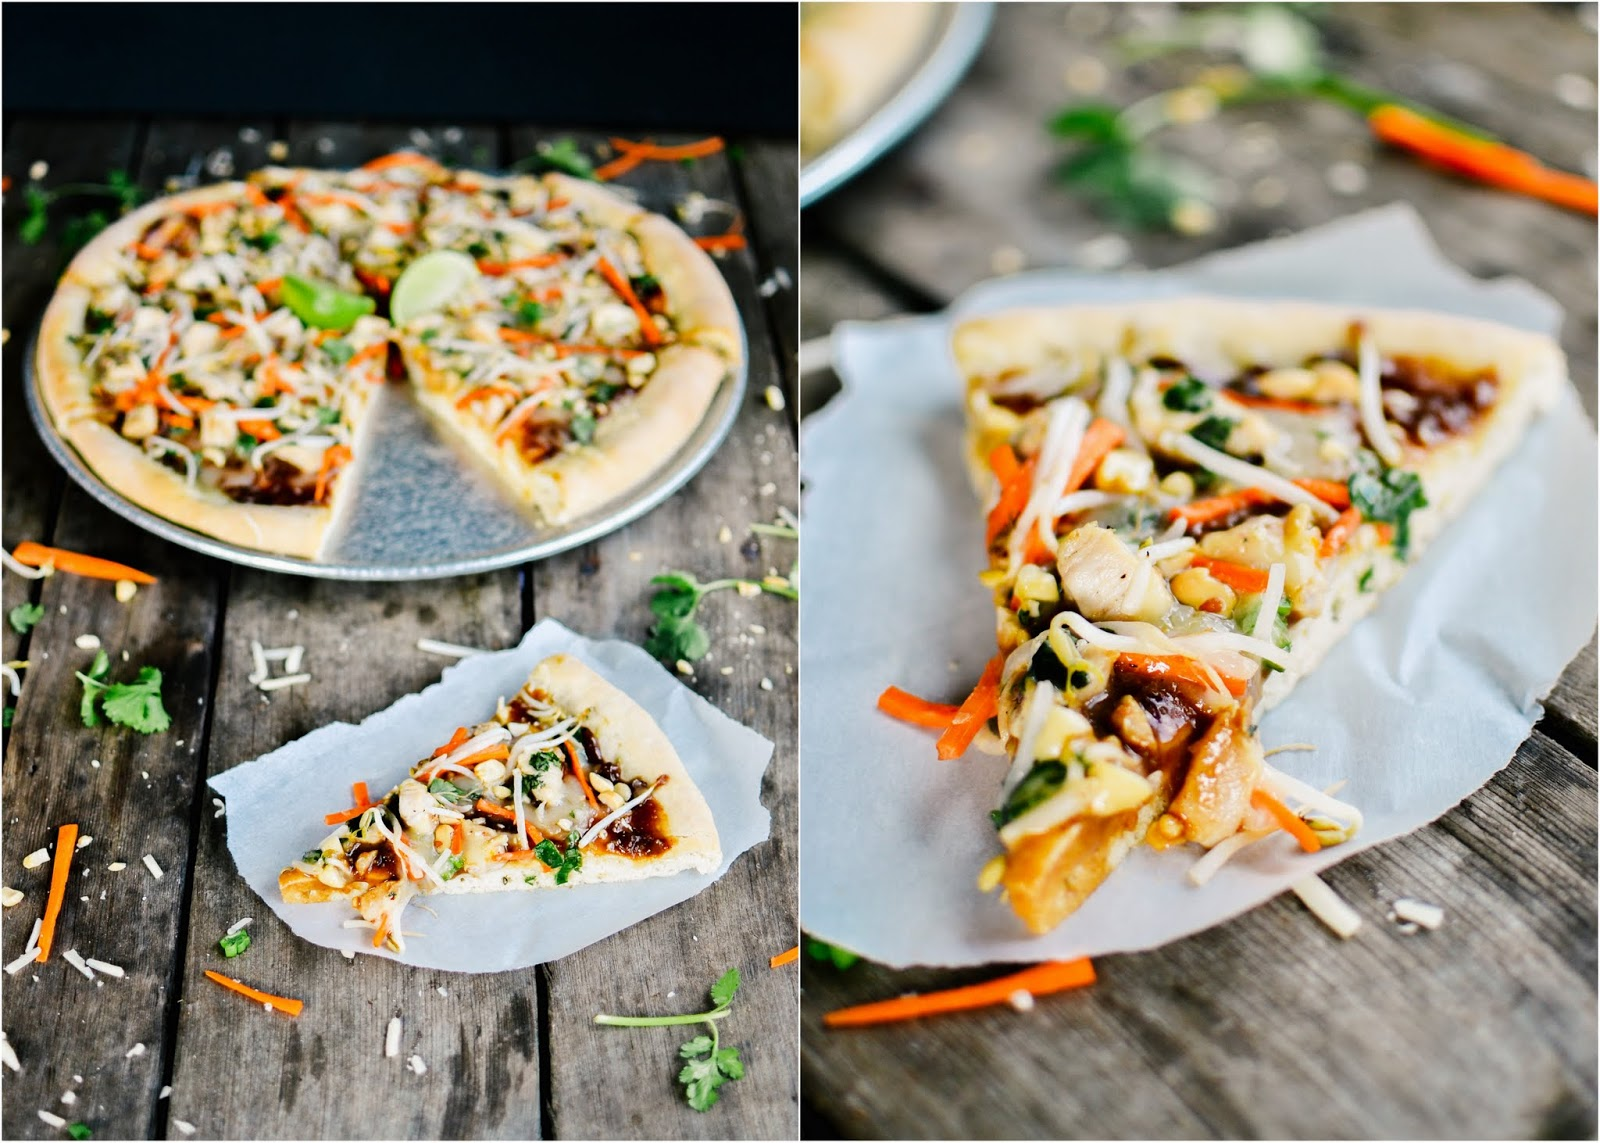 pizza+thai%252C+normal%252C+and+dough-004.jpg